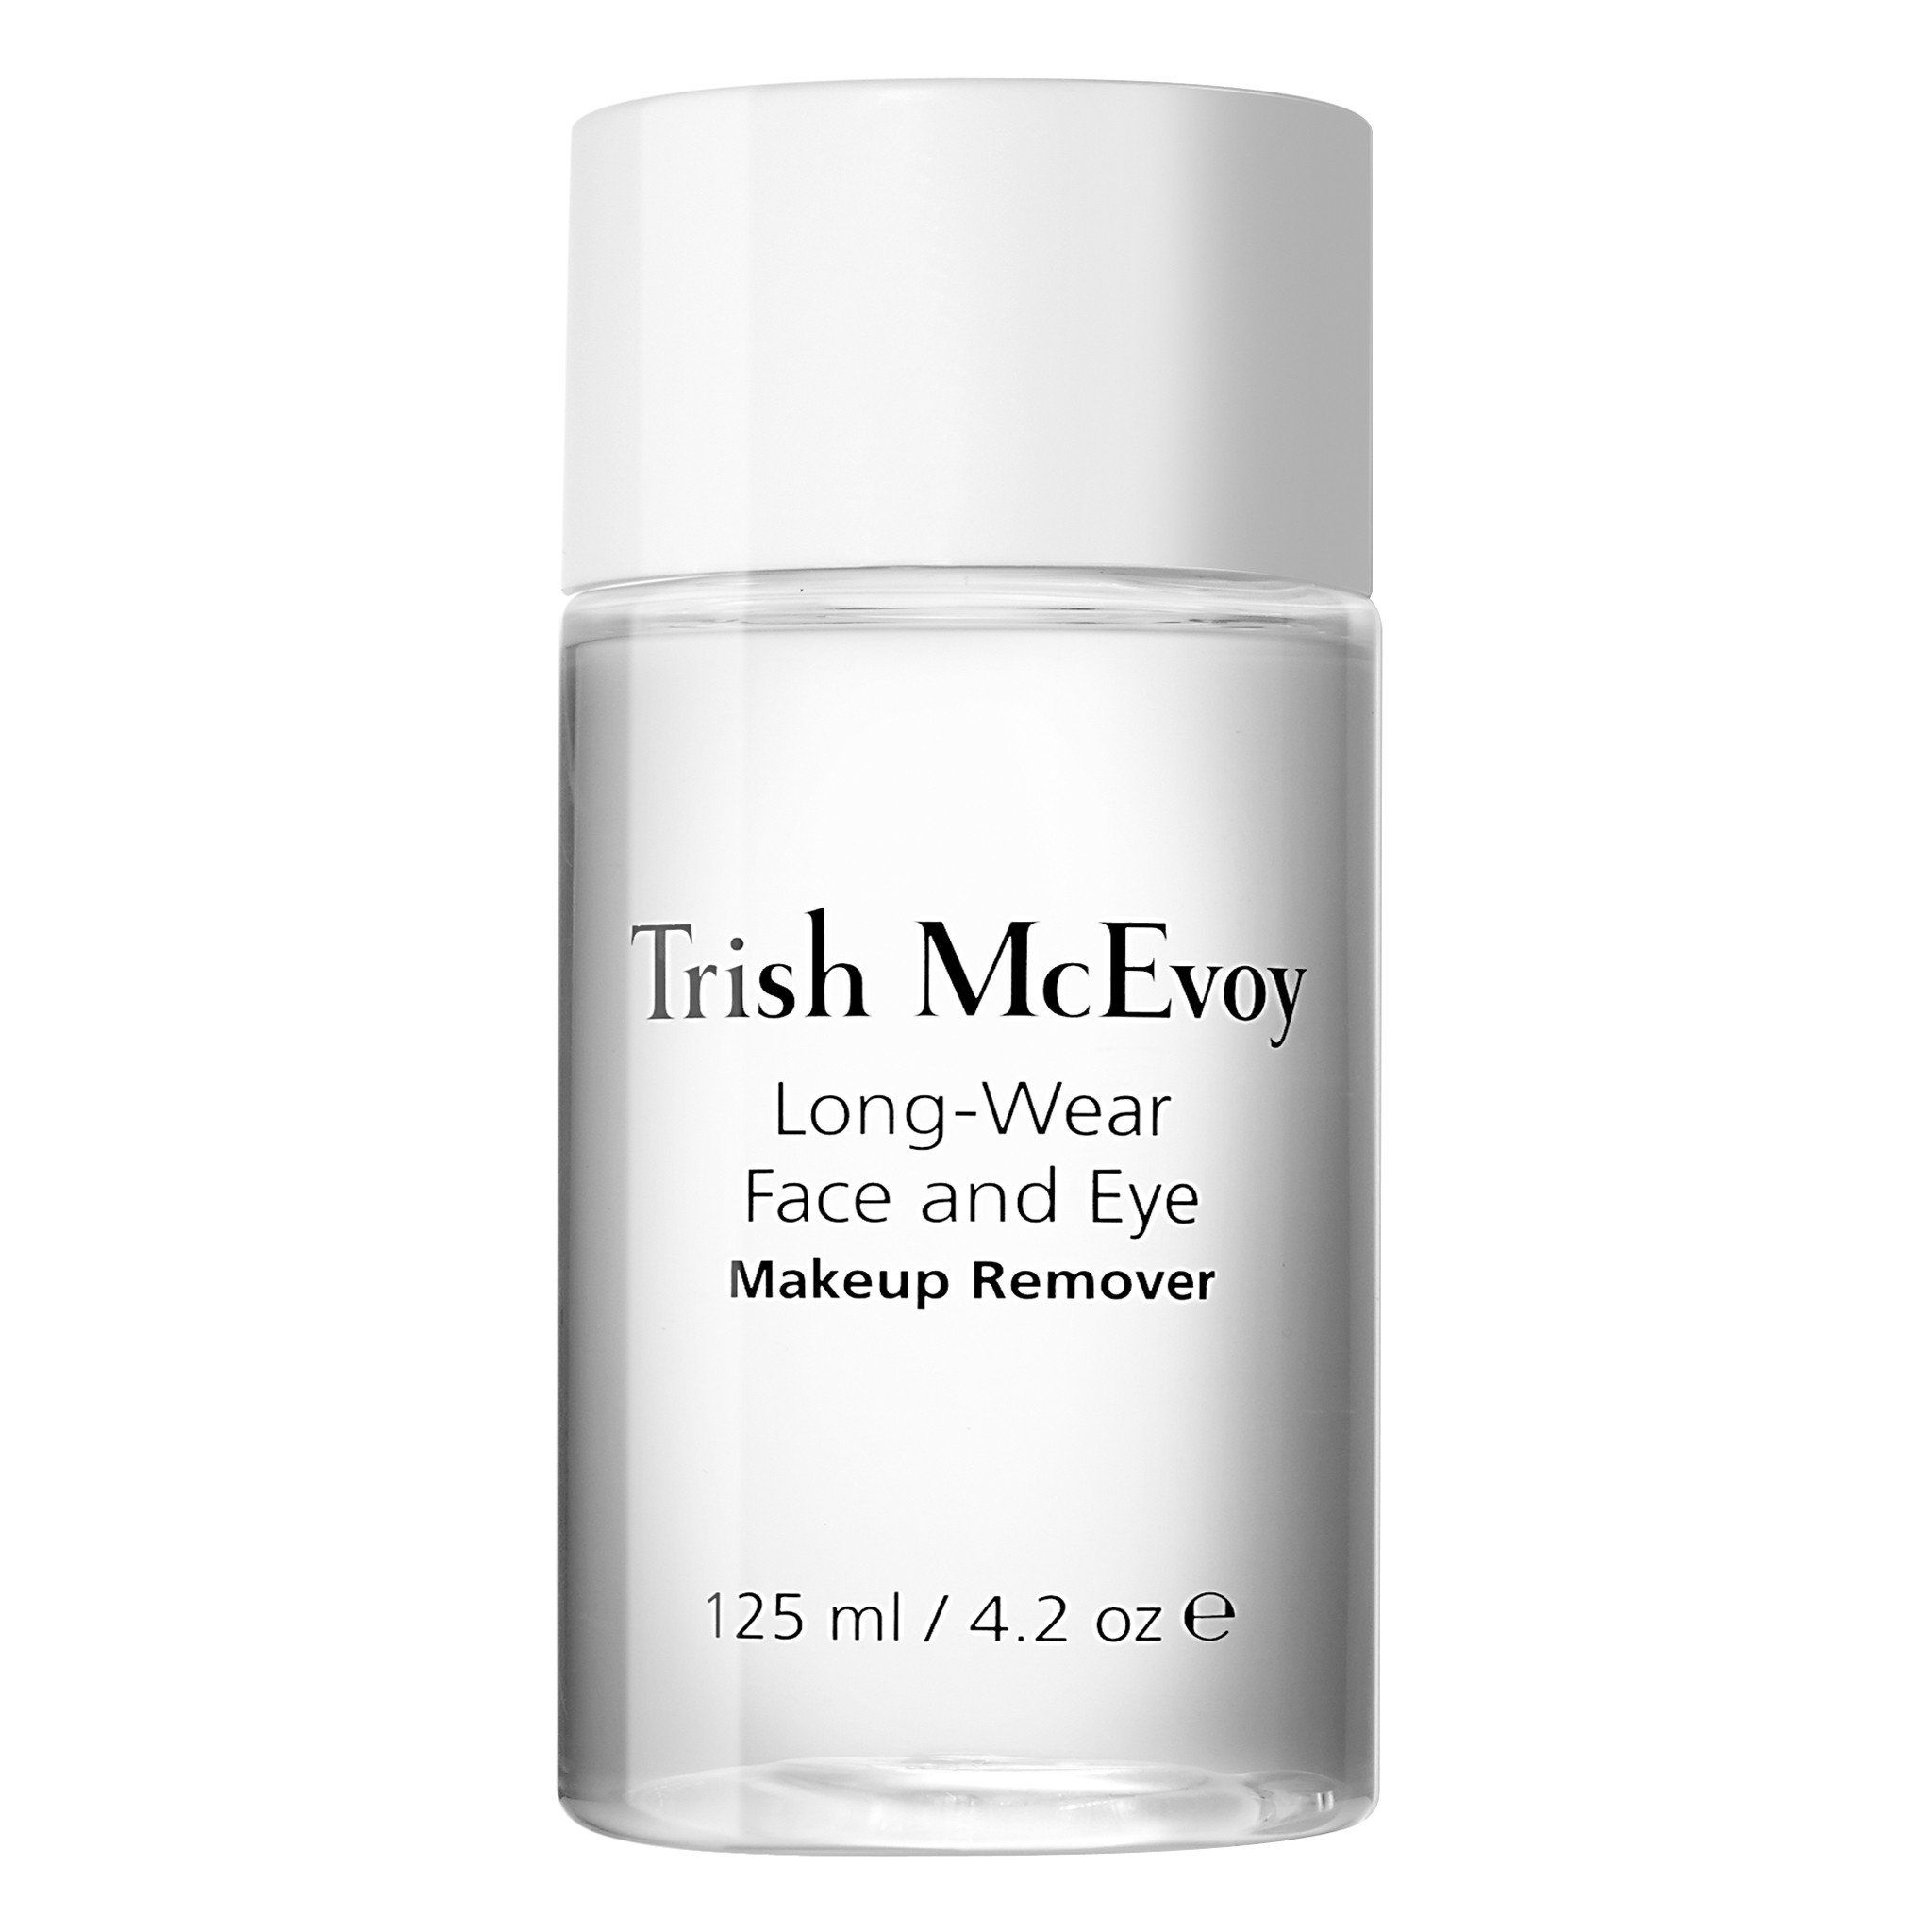 Trish McEvoy Face and Eye Makeup Remover Large 4.2oz